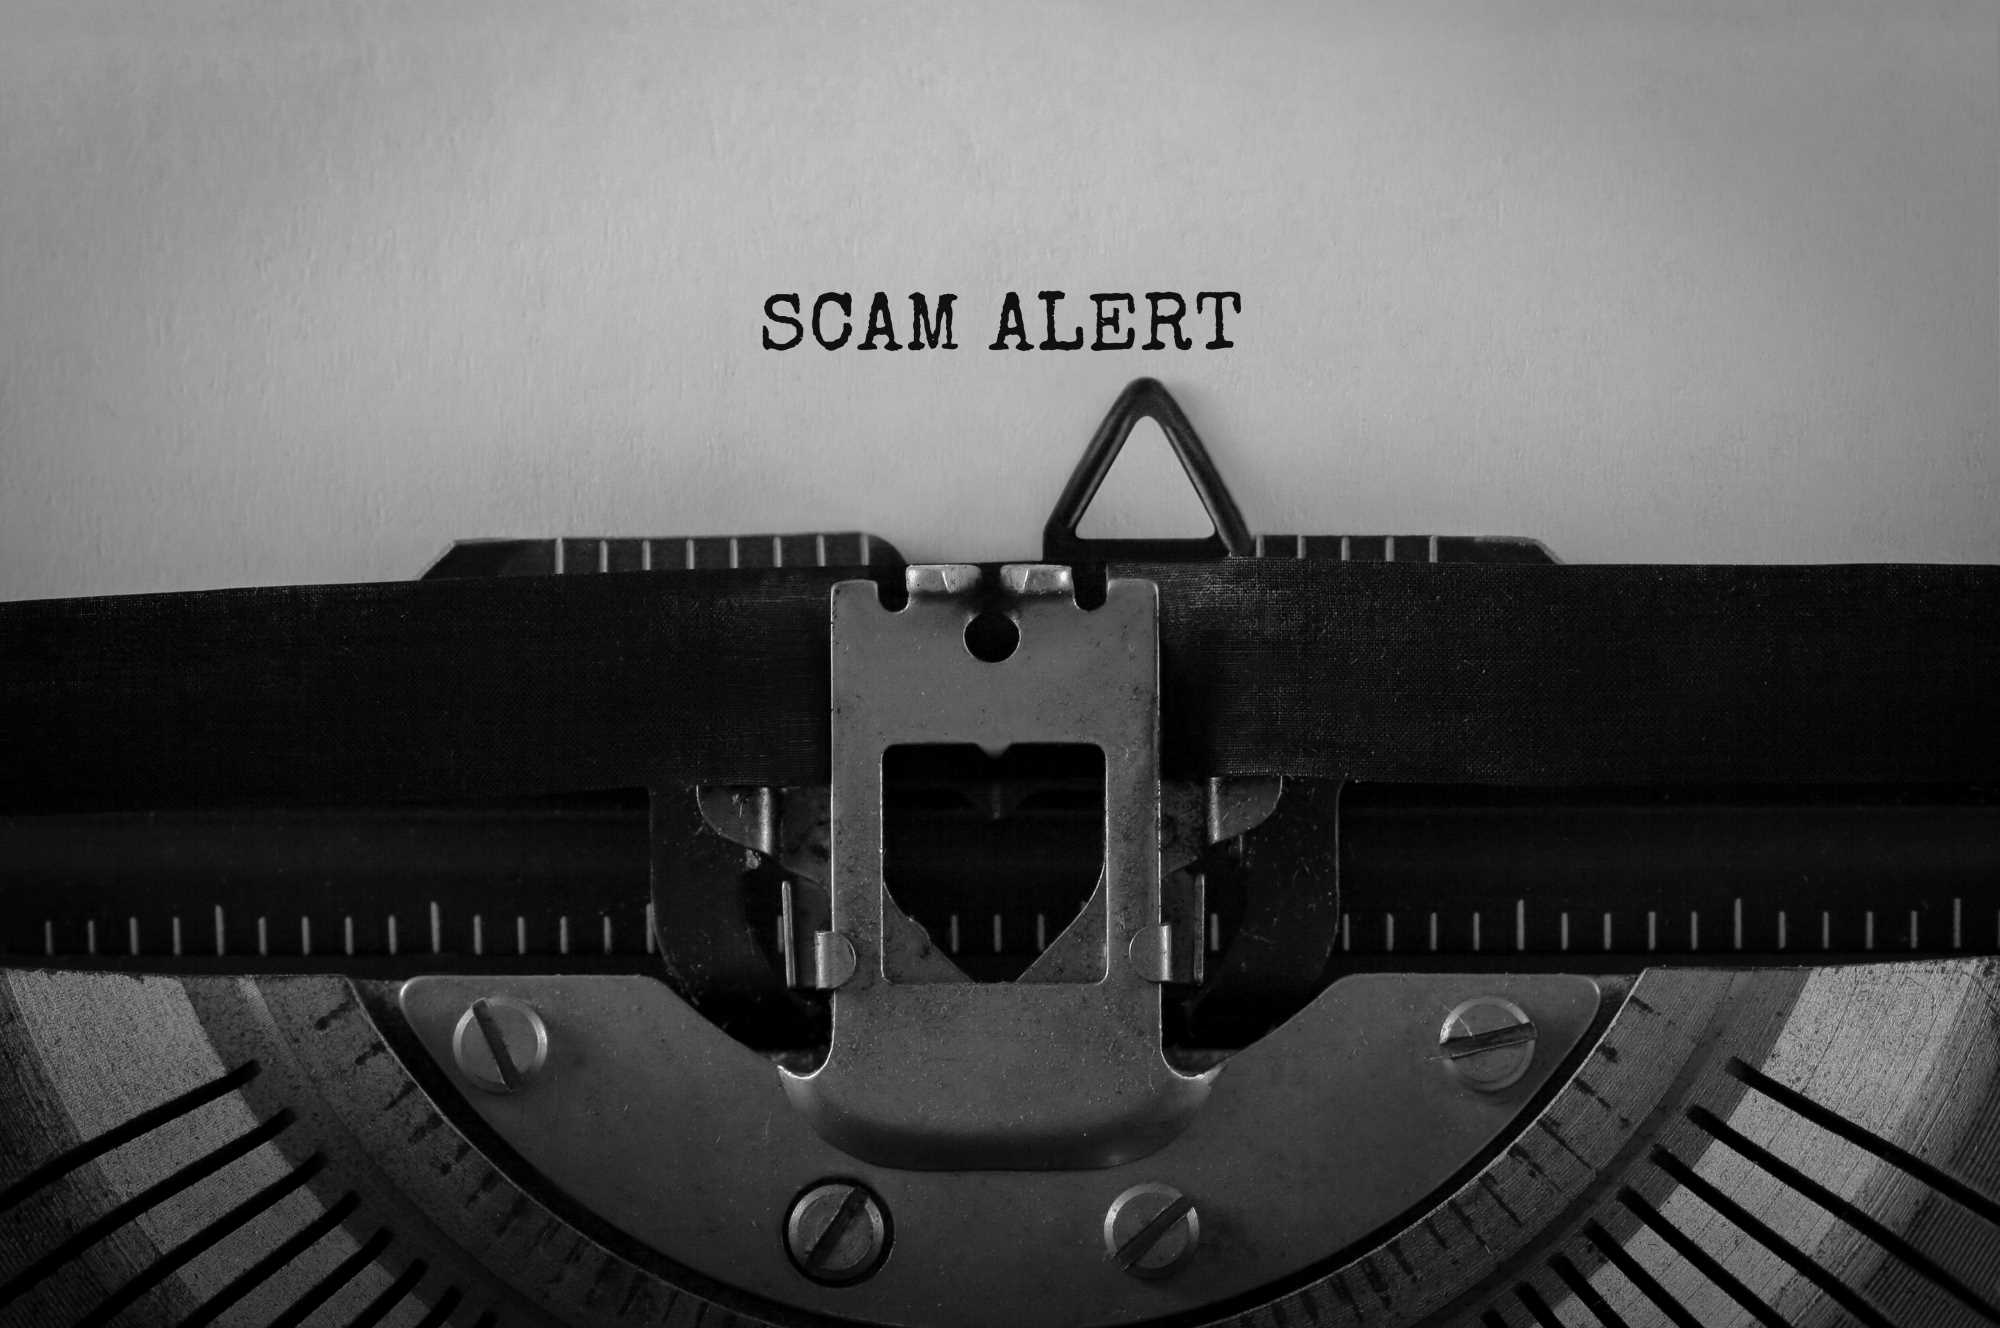 Fake COVID-19 text message scam